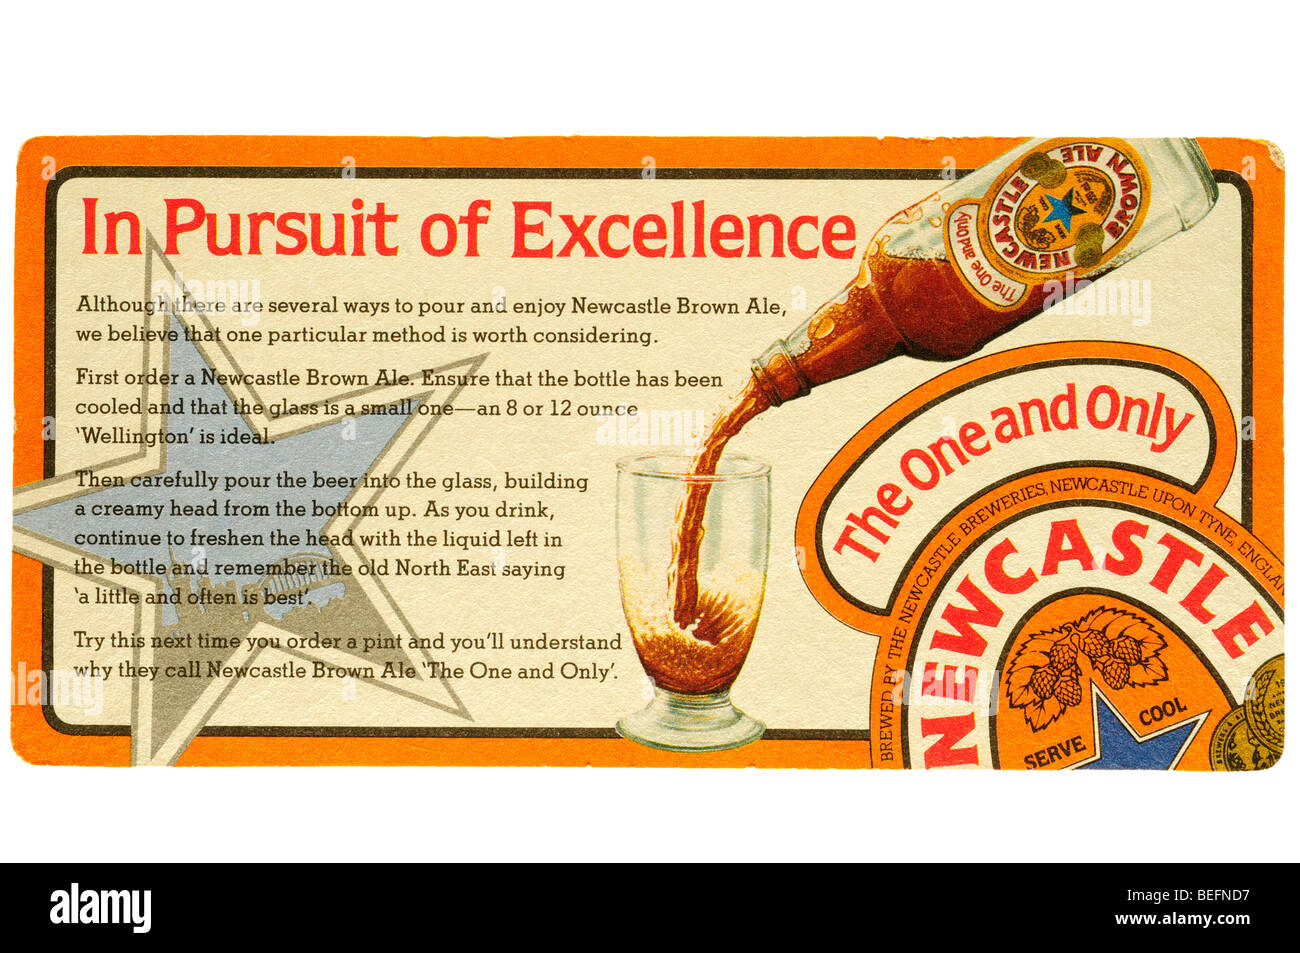 in persuit of excellence the one and only newcastle brown ale - Stock Image